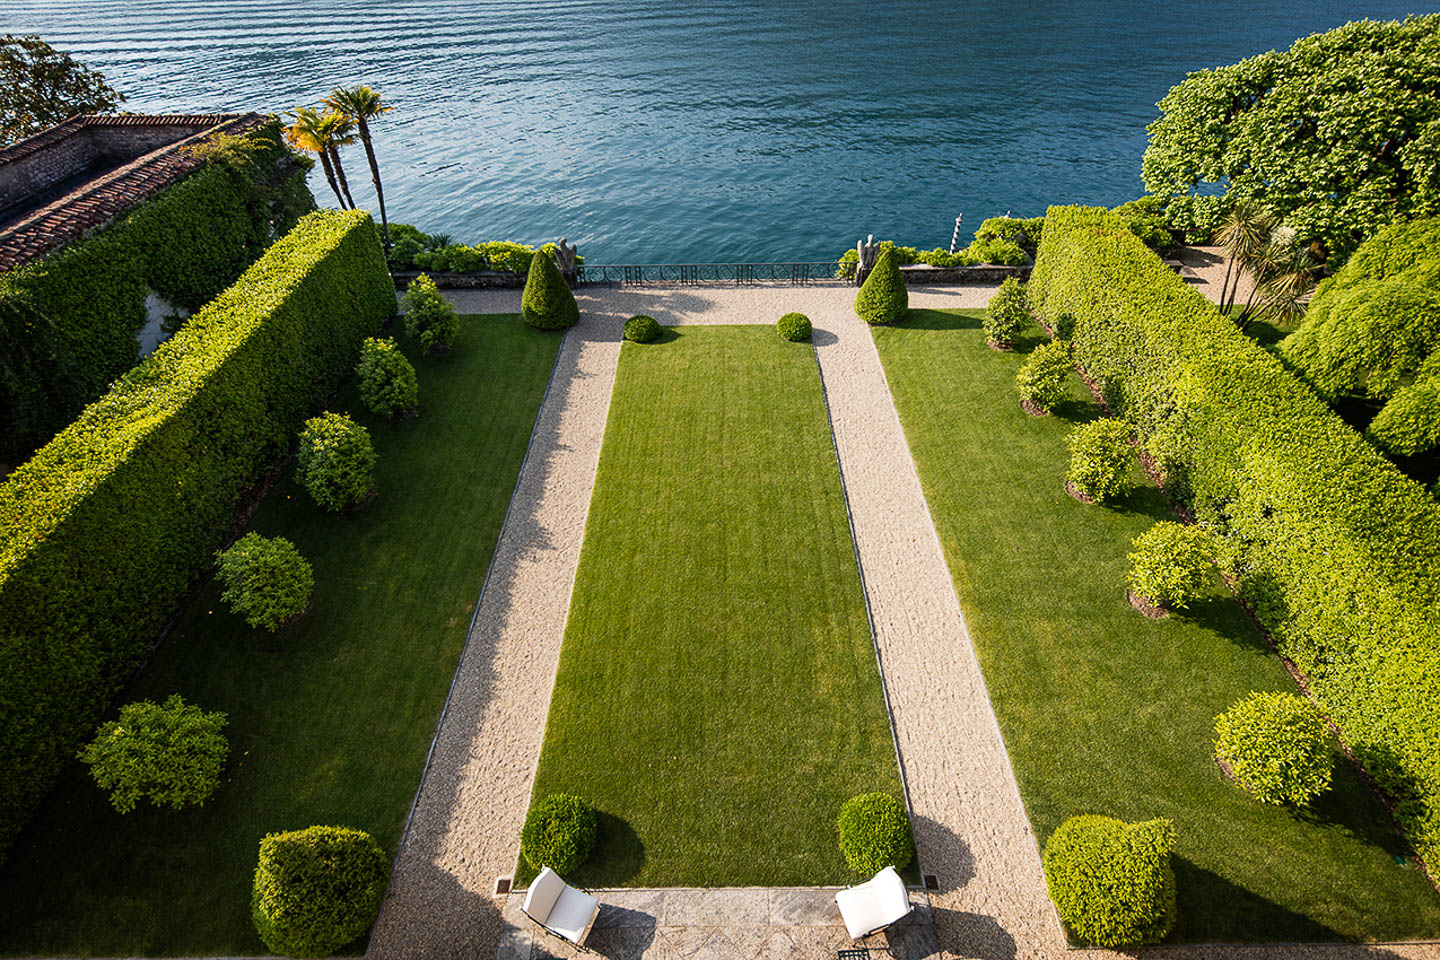 Villa Balbiano luxury property Lake Como Italy wedding ceremony green best area destination wedding event party boat access service best garden decor design